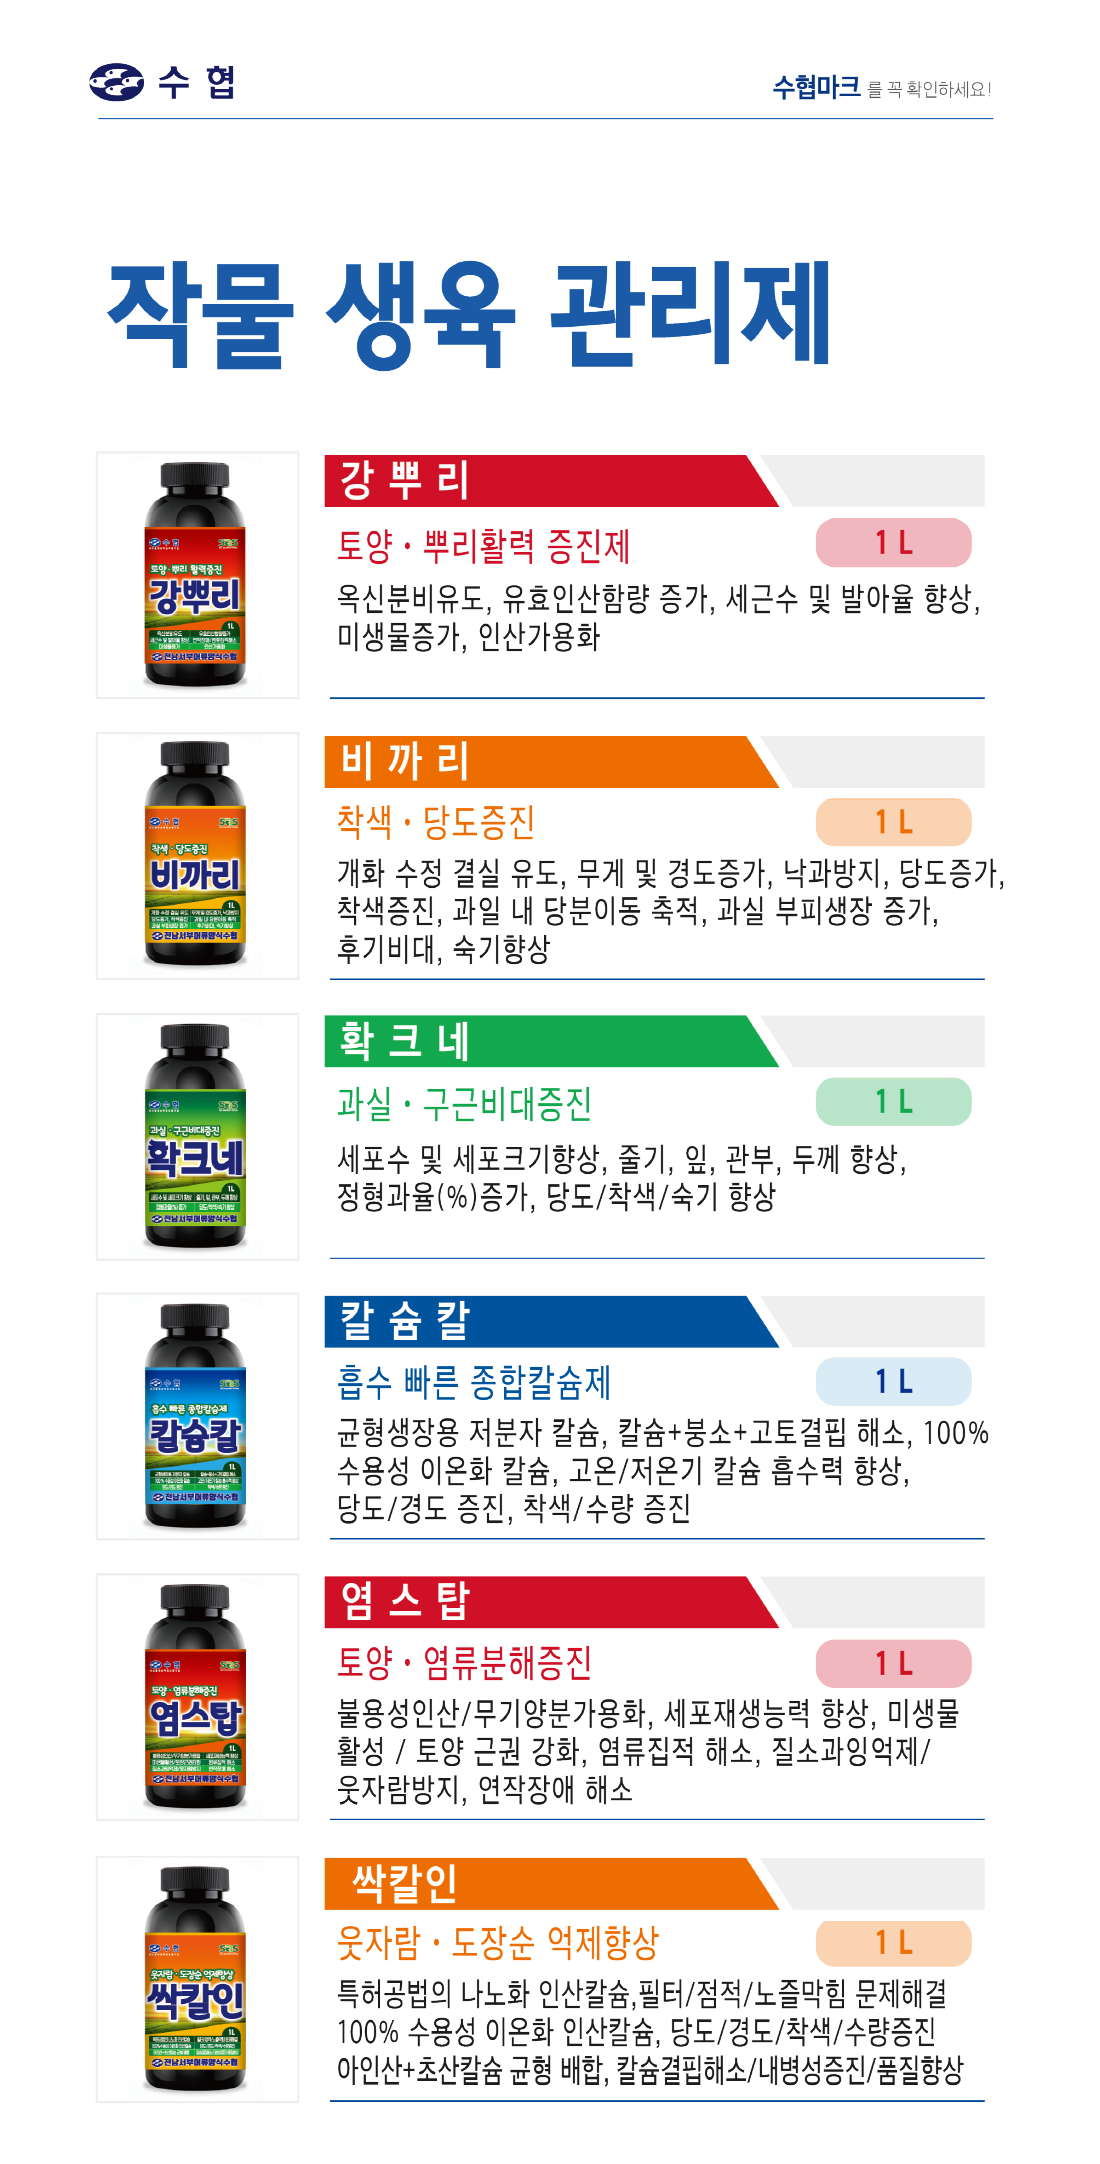 http://suhyup2019.handpr.kr/bs/se2/imgup/1589964705det1_s.png